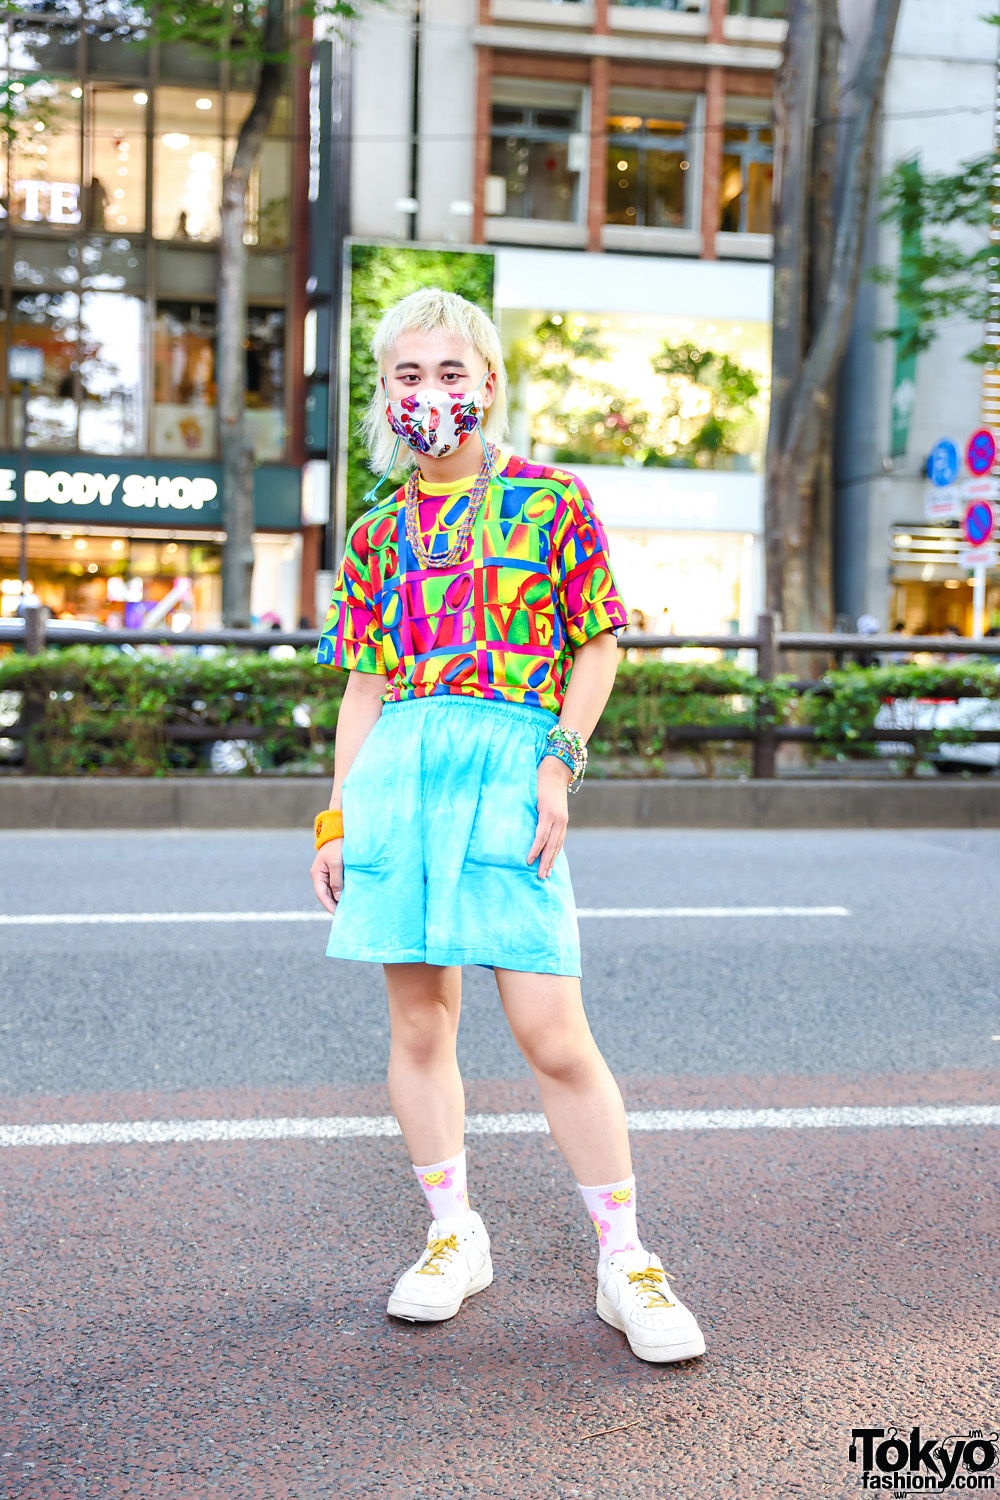 Harajuku Kawaii Street Style w/ Kobinai Face Mask, Vintage LOVE Graphic Print Shirt, Vintage Teal Shorts, Nike White Sneakers, Smiley Wristband & Chicago Accessories